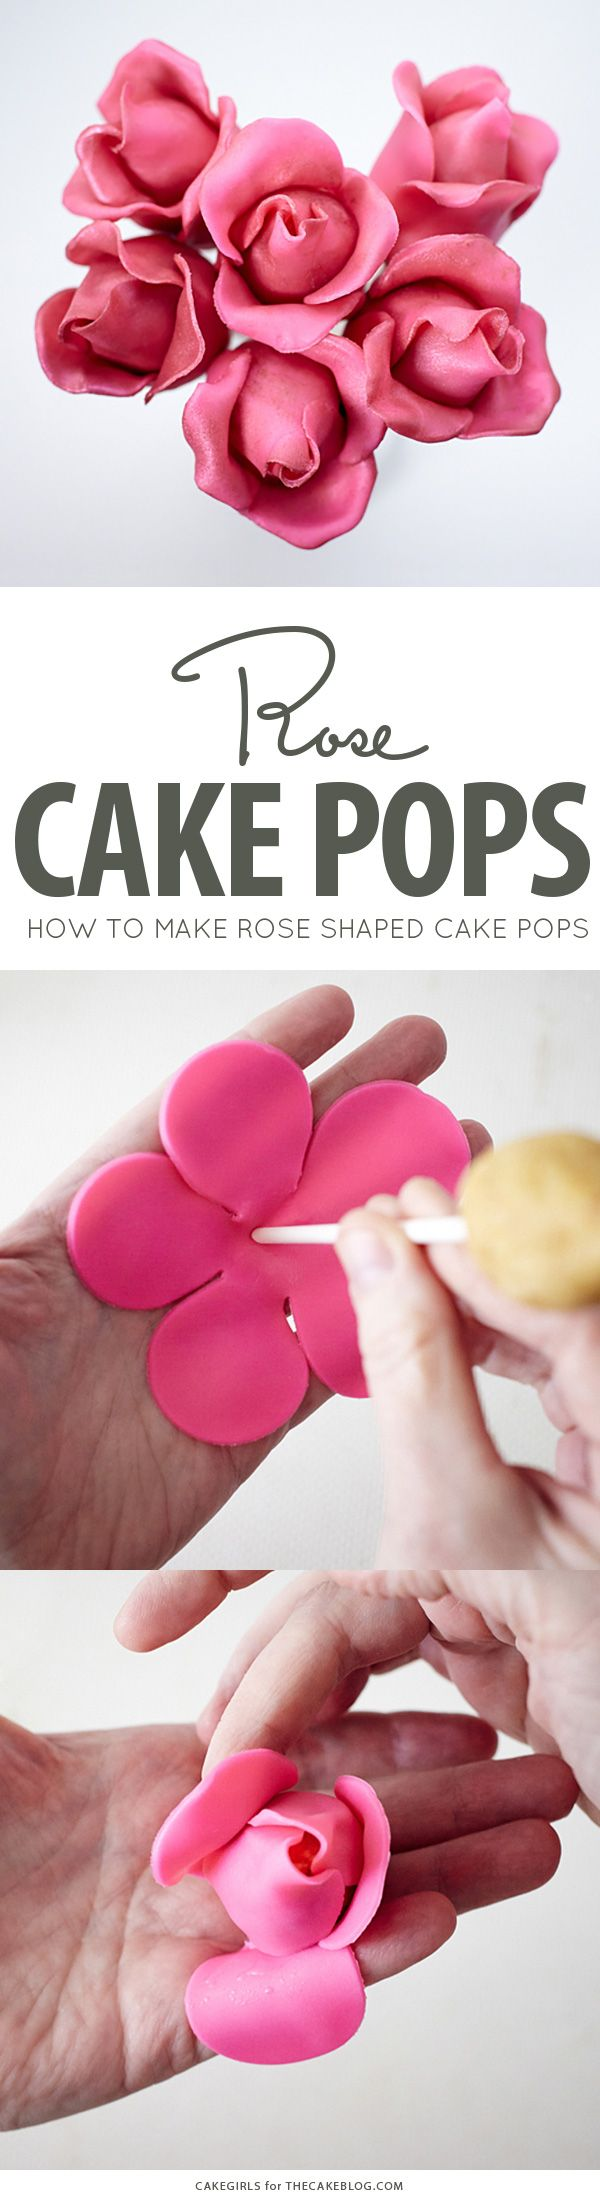 DIY Rose Cake Pops